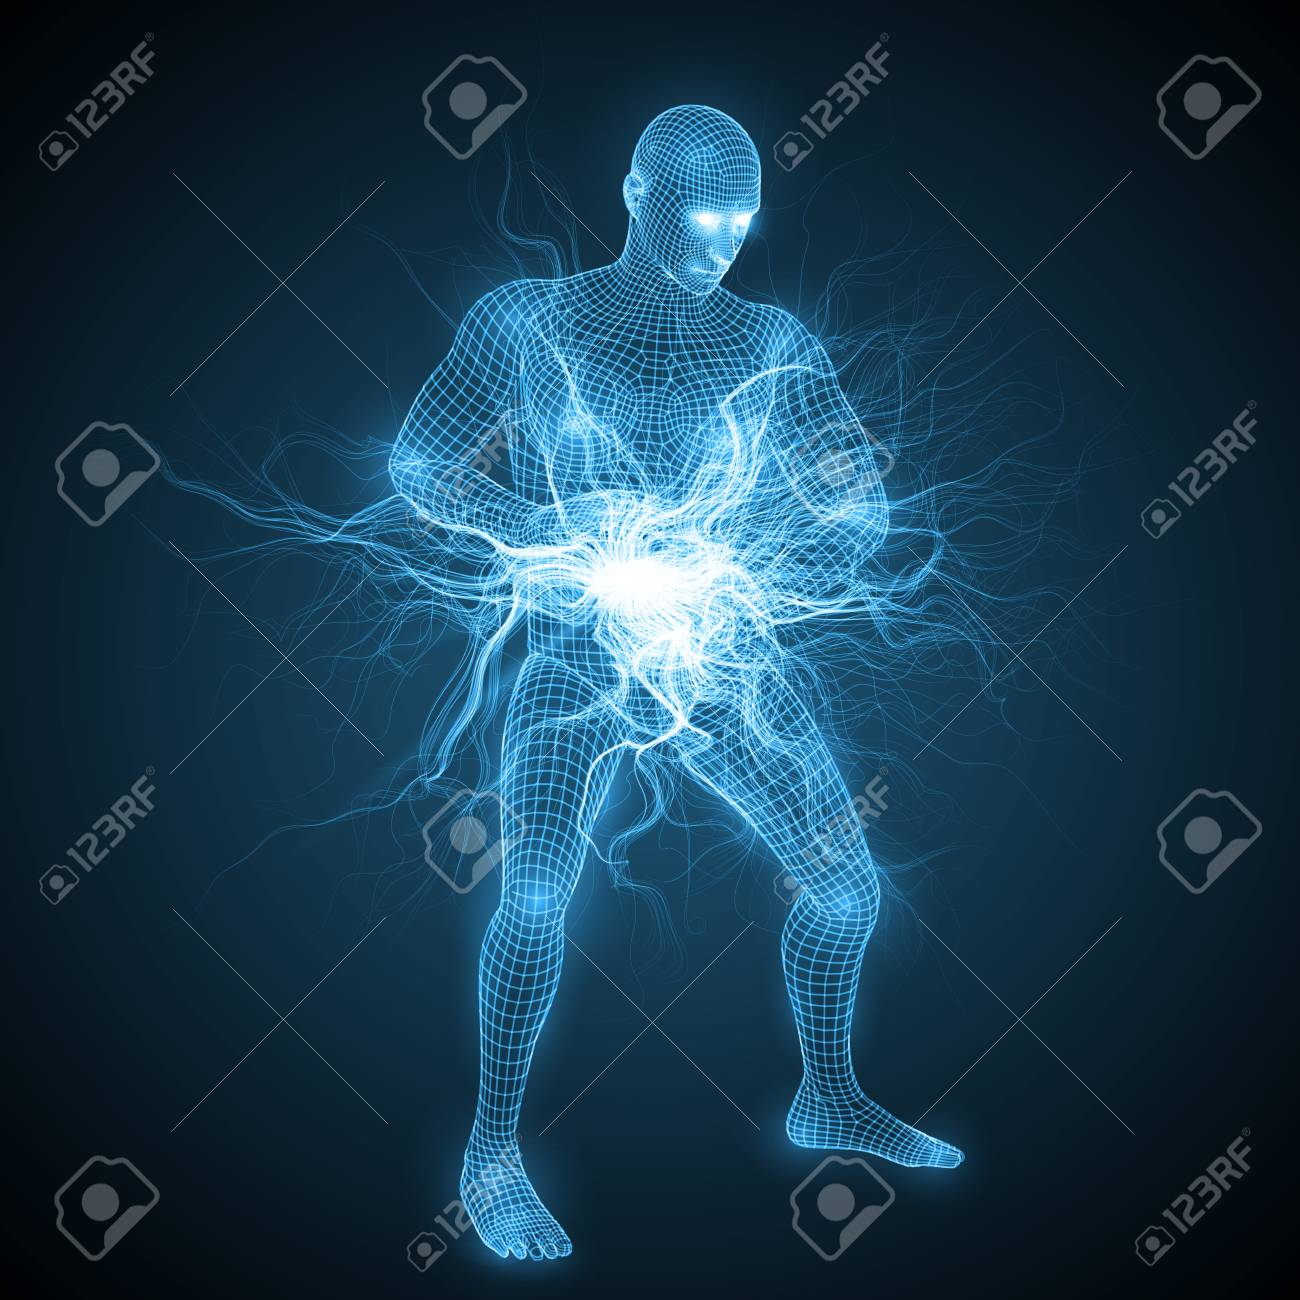 making tai chi spiritual energy ball. collecting energy of nature between hands. spiritual energy beams inside head and torso. blue version. suitable for any technology, future and ai themes. - 115044241